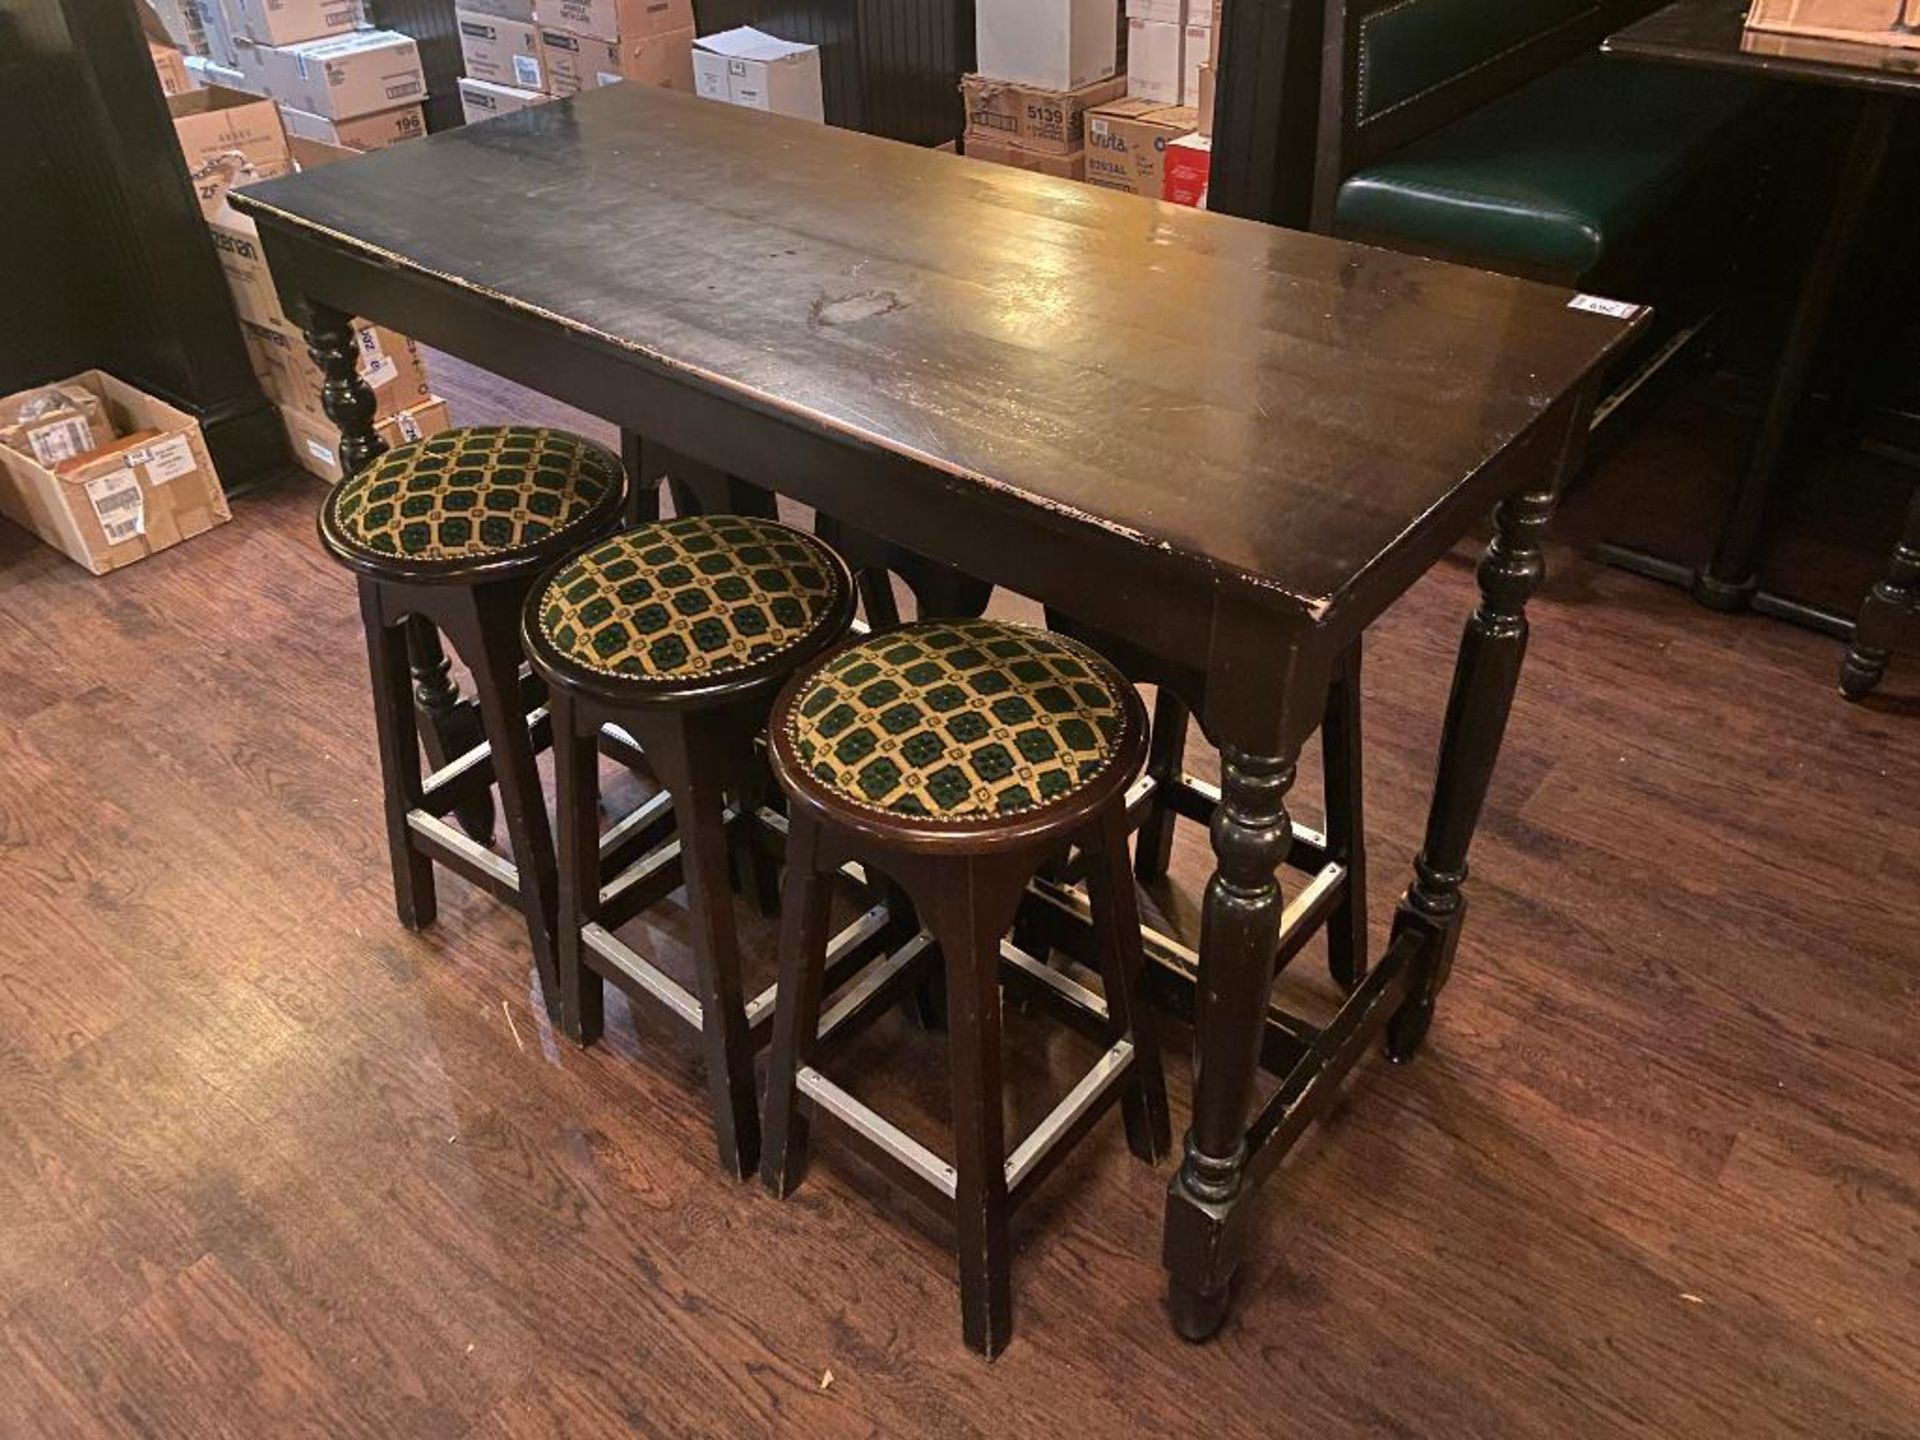 WOODEN BAR HEIGHT TABLE WITH 6 BAR STOOLS - Image 2 of 2